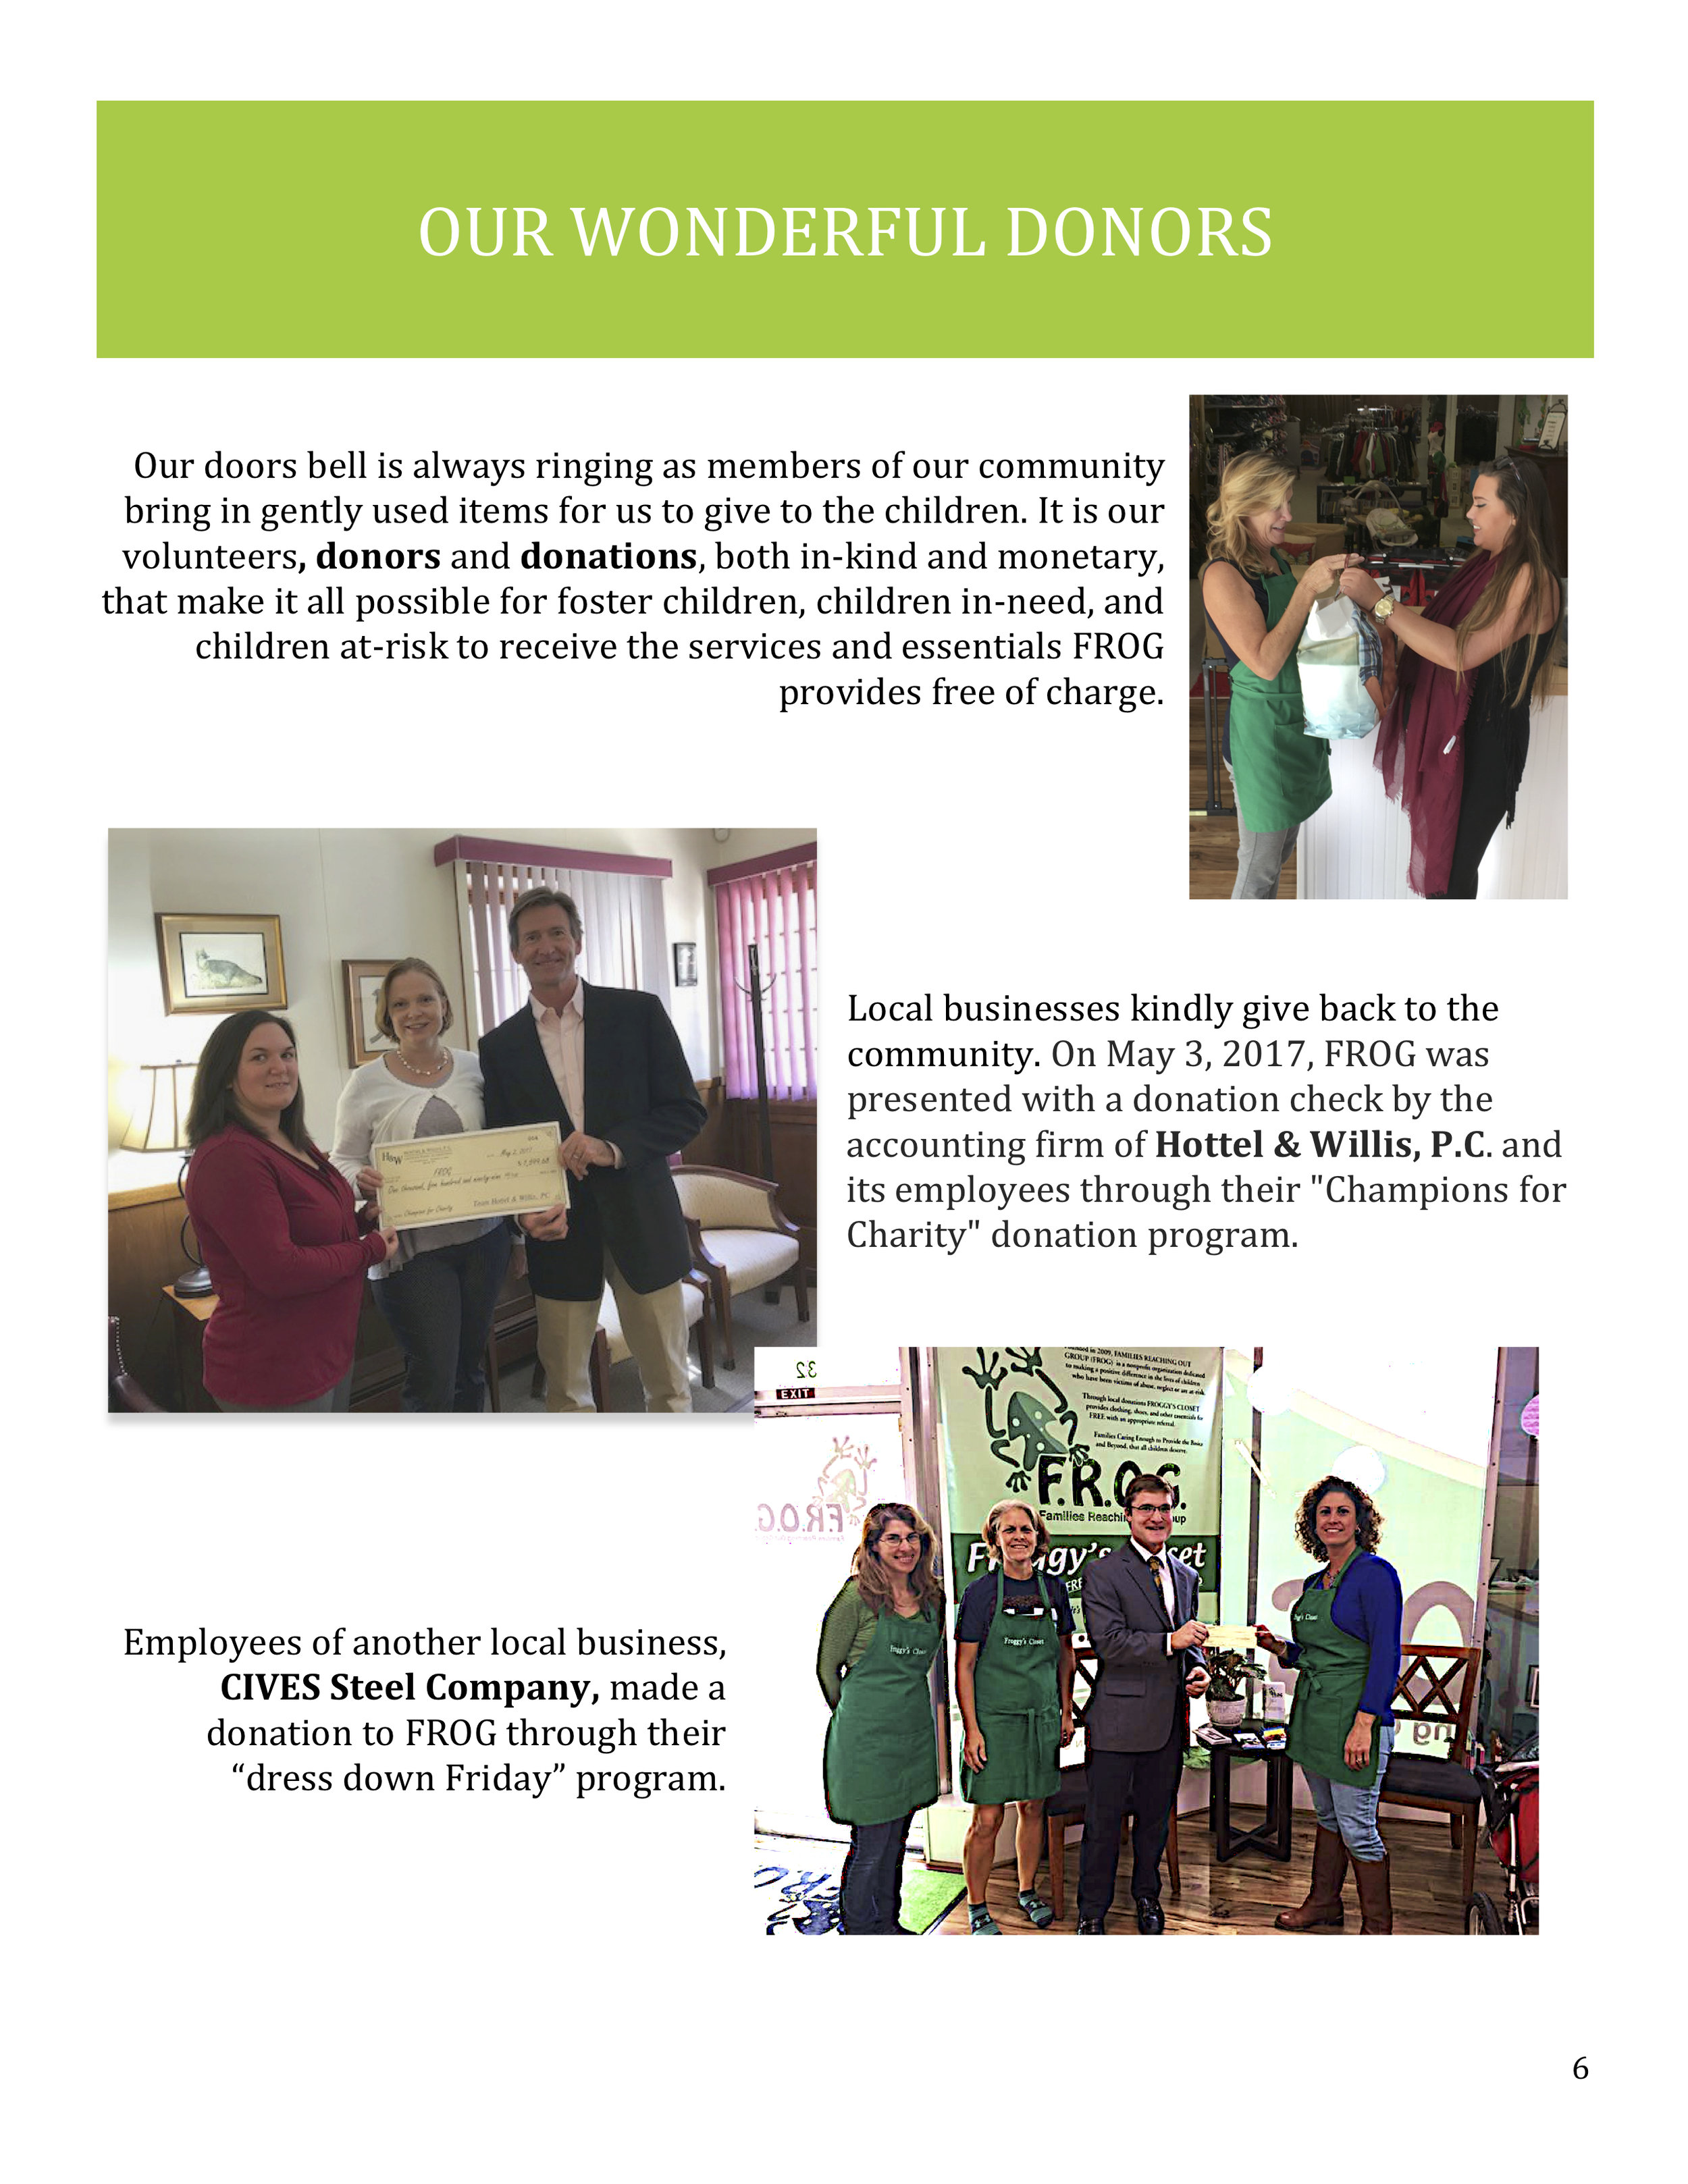 FROG-Our Year in Review-2017 Page 6.jpg